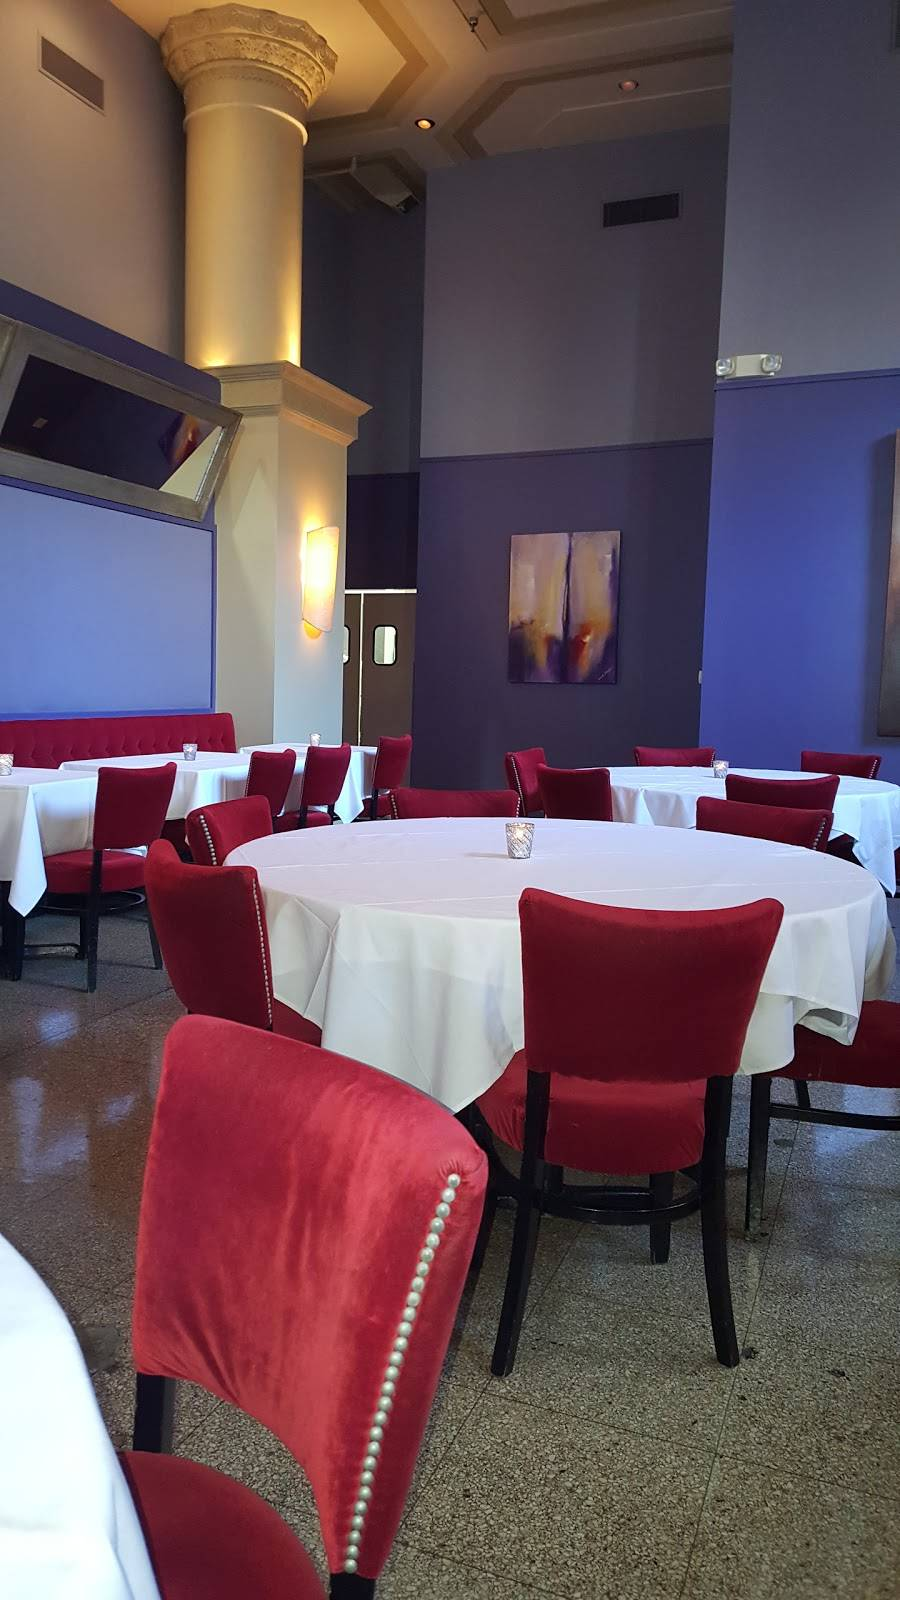 Felicia Suzannes | restaurant | 80 Monroe Avenue South Main Street # L1 On Main Street, between Monroe &, Madison Ave, Memphis, TN 38103, USA | 9015230877 OR +1 901-523-0877